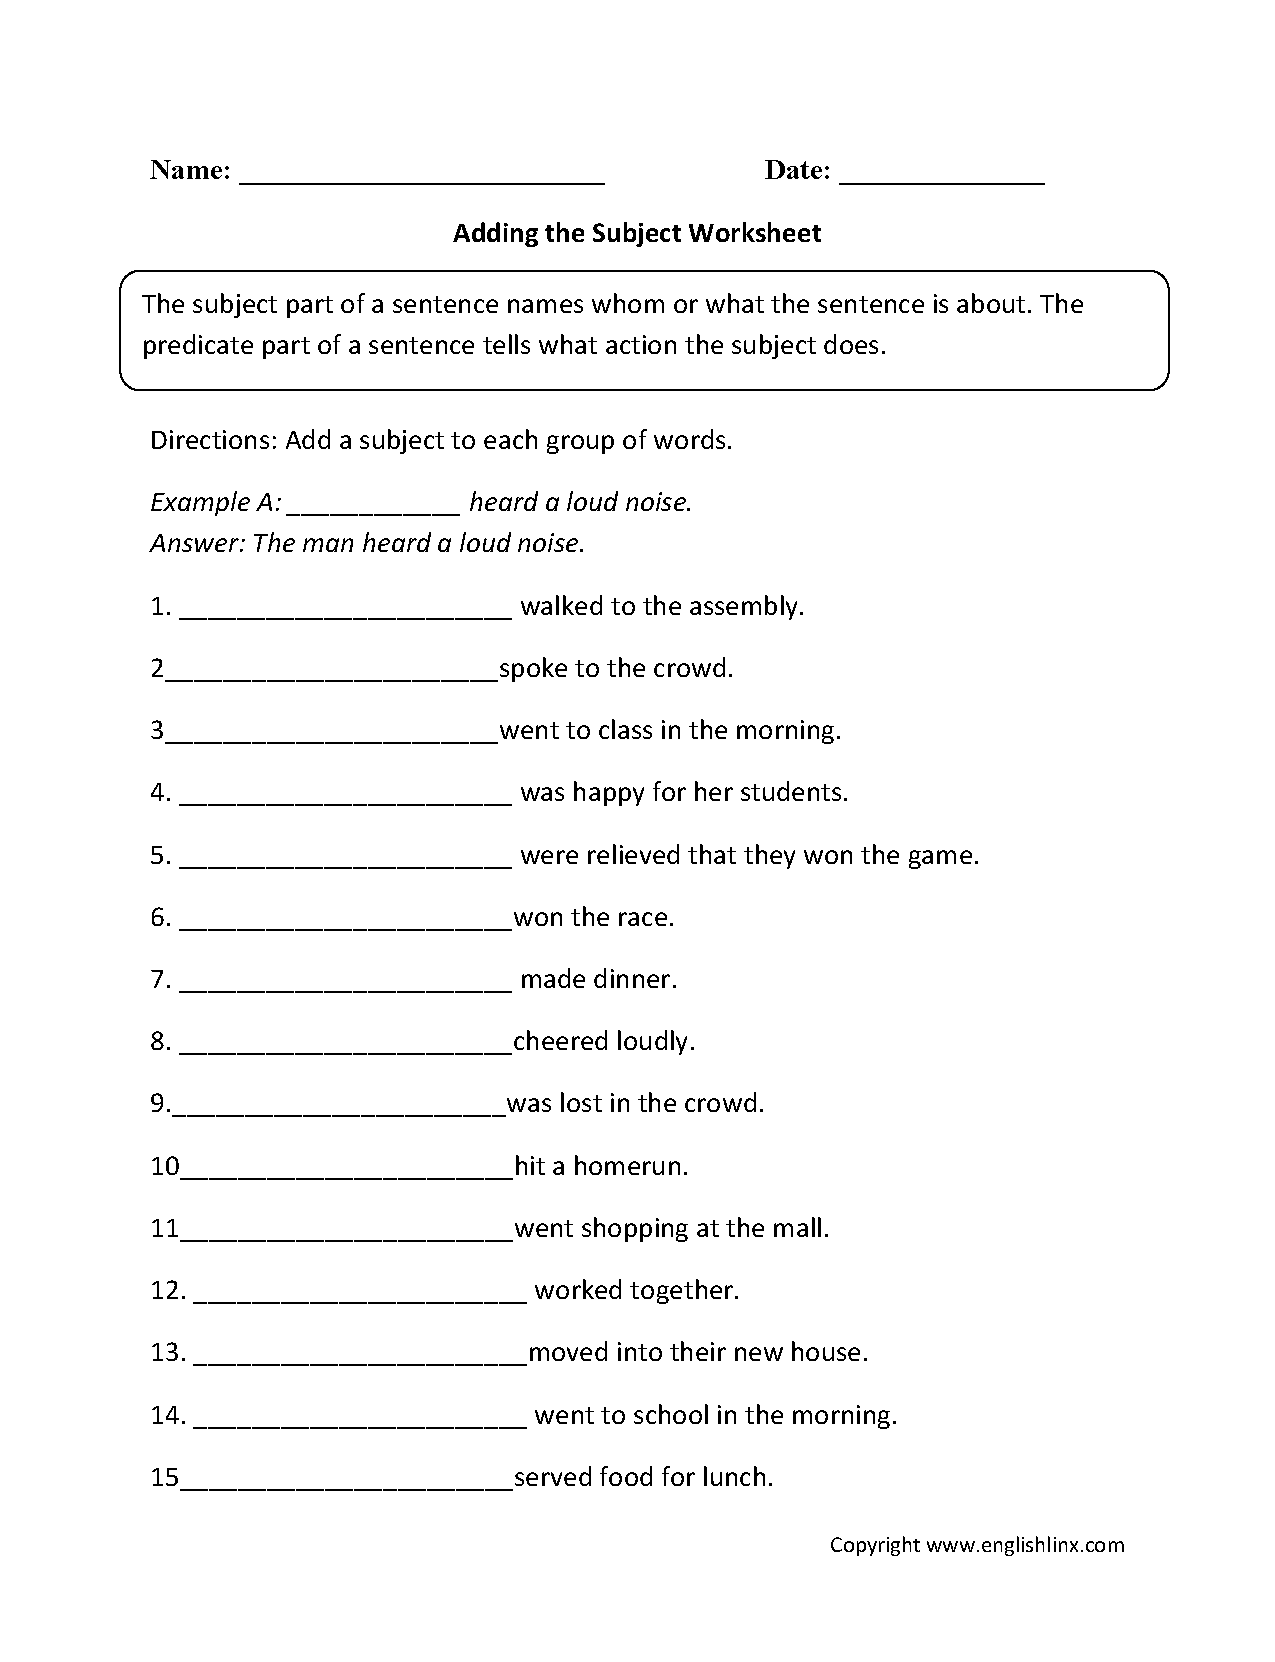 Worksheets Subject Predicate Worksheets 3rd Grade adding a subject worksheet englishlinx com board pinterest these and predicate worksheets are great for working with use worksheets